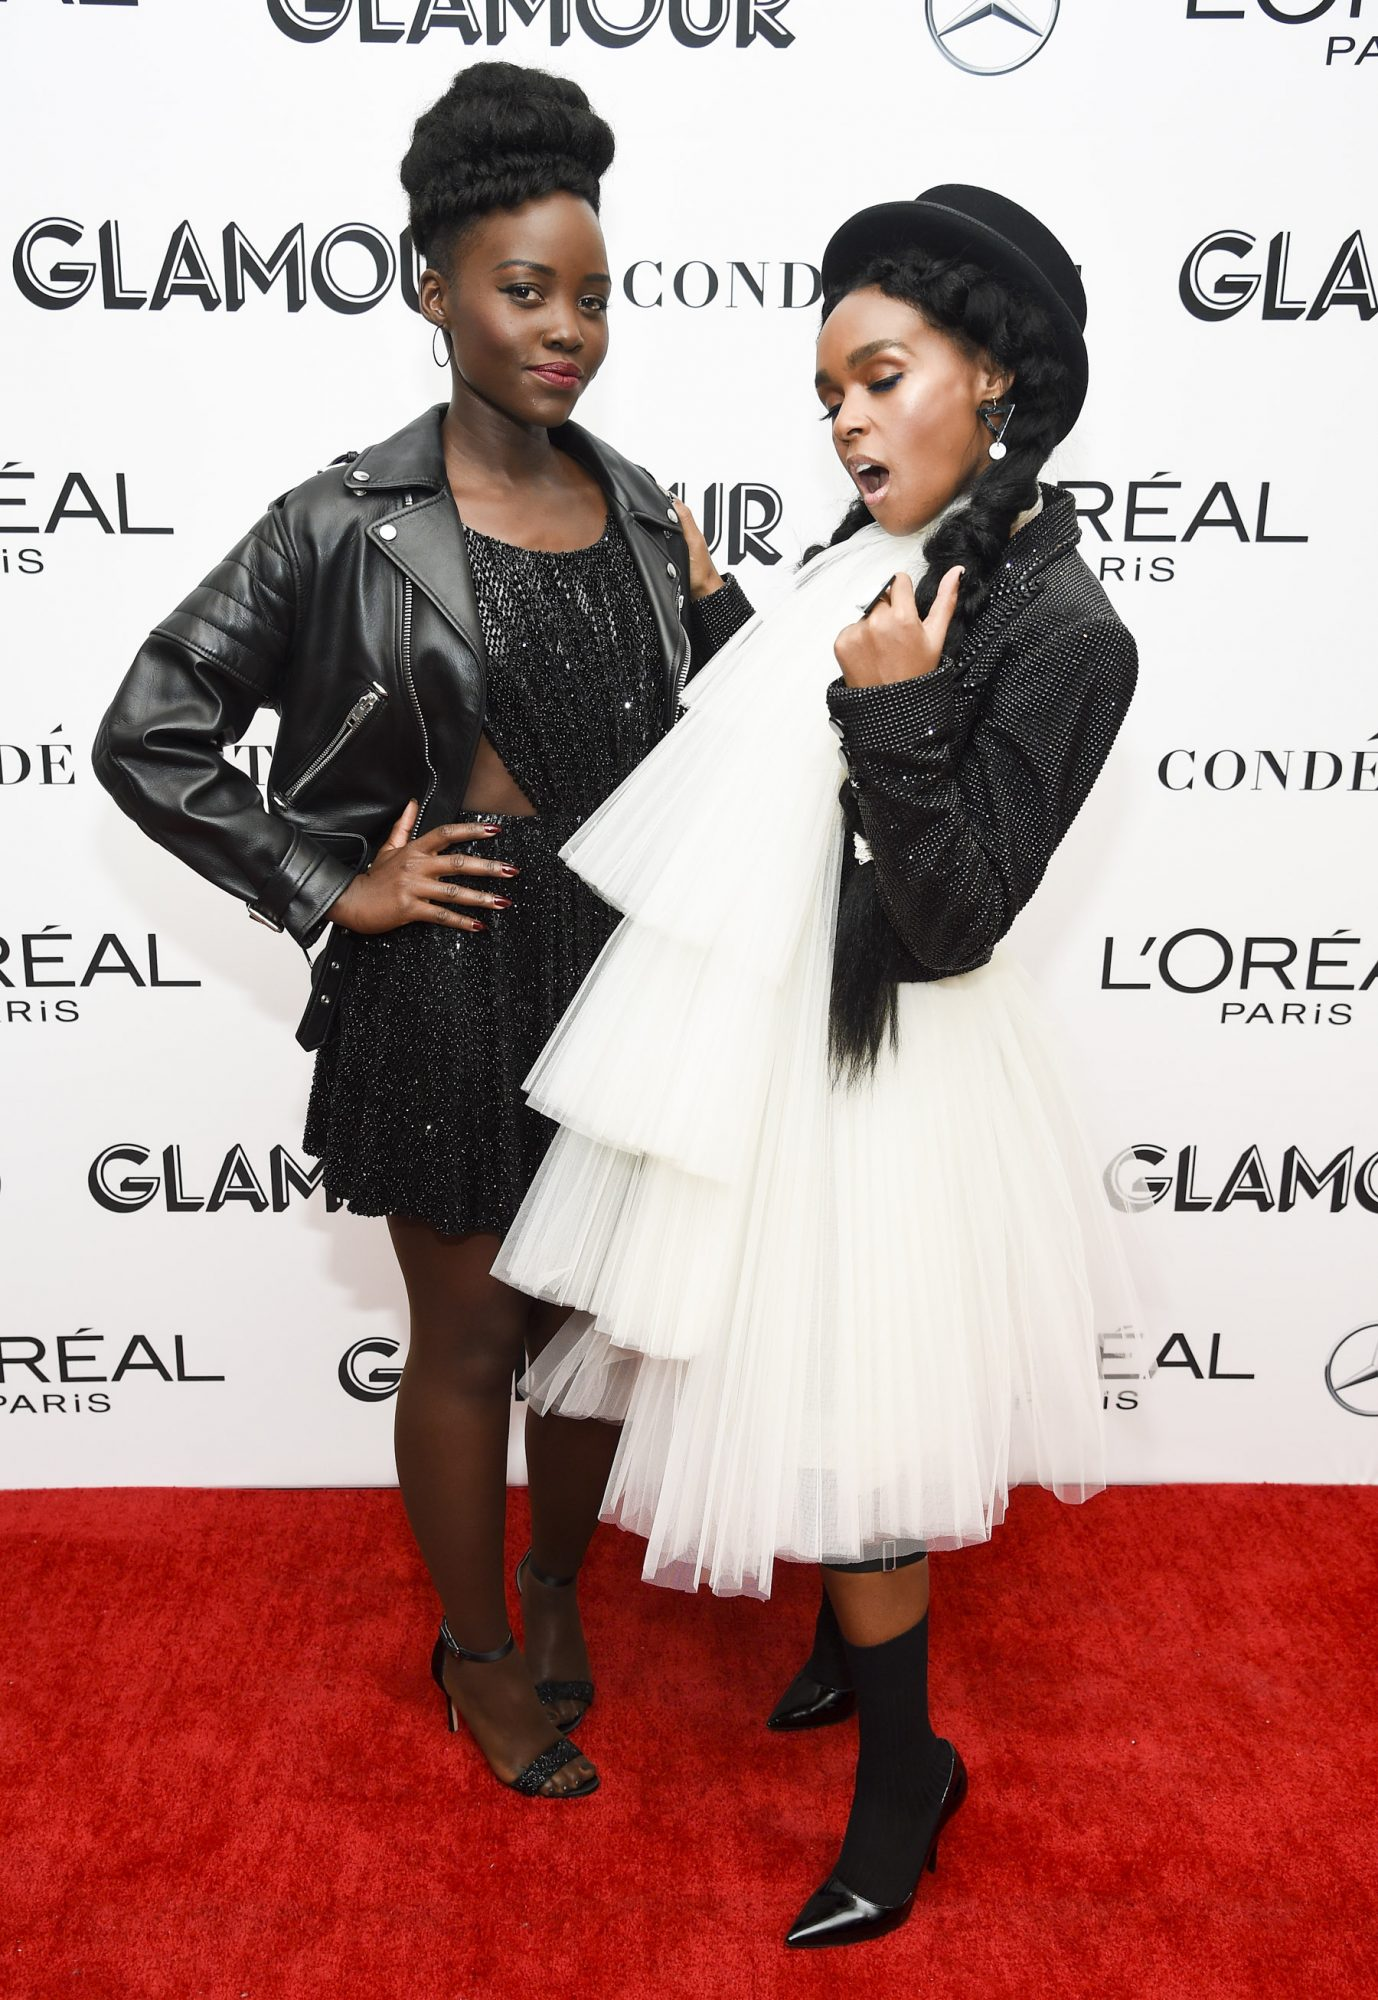 NEW YORK, NY - NOVEMBER 12: Lupita Nyong?o and Janelle Monae pose backstage at the 2018 Glamour Women Of The Year Awards: Women Rise on November 12, 2018 in New York City. (Photo by Dimitrios Kambouris/Getty Images for Glamour)